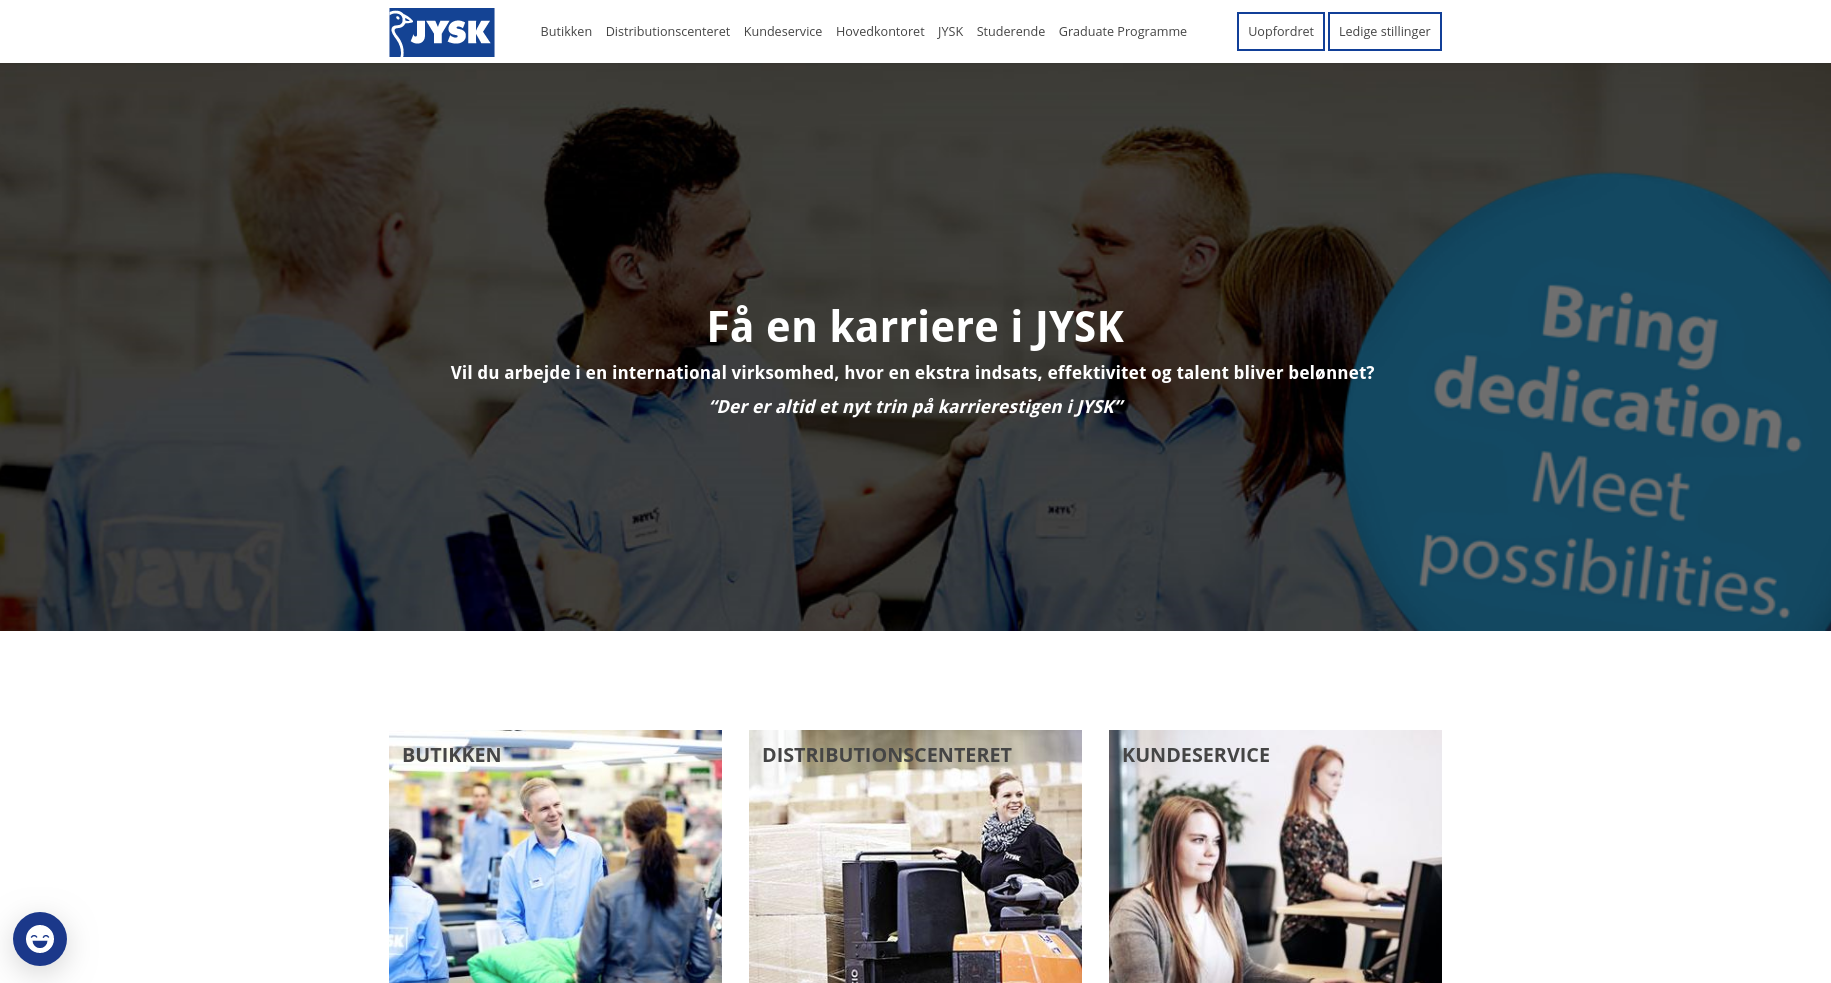 JYSK career website